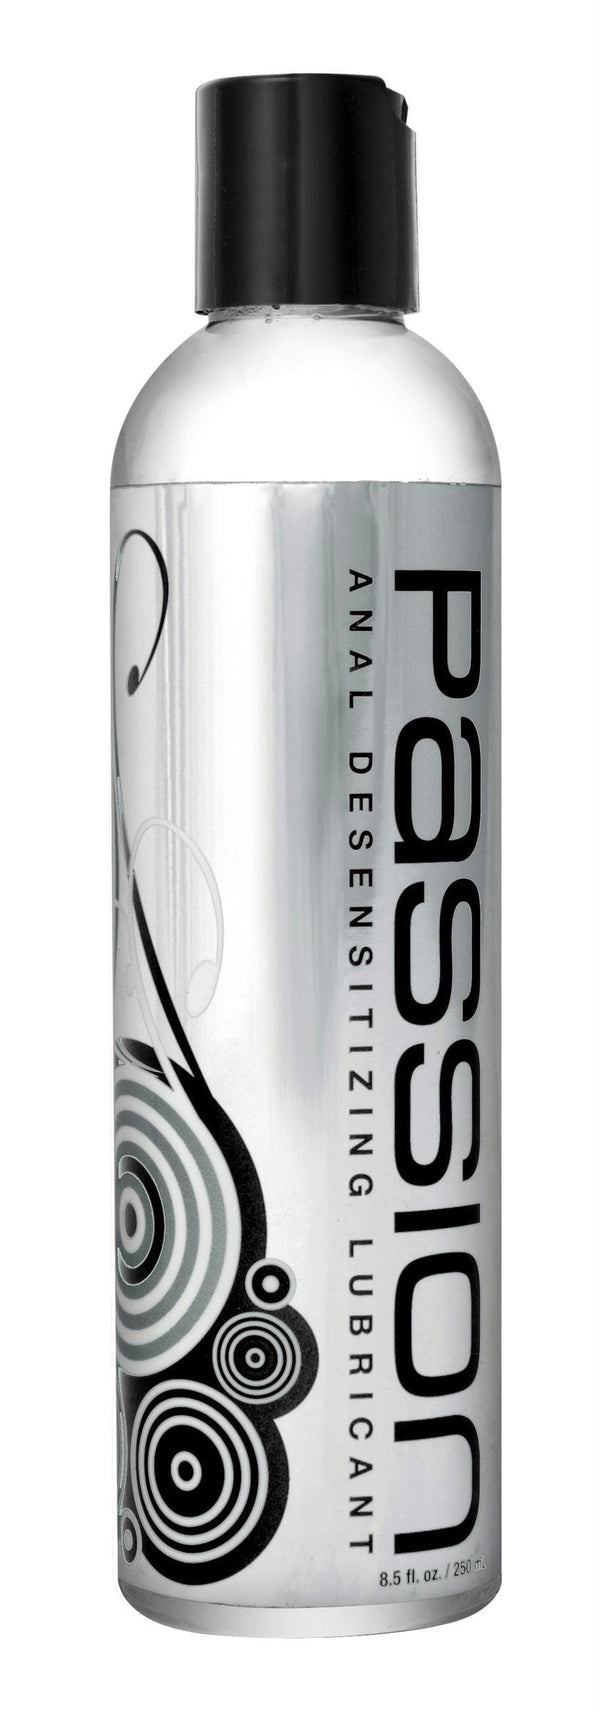 Passion Anal Desensitizing Lubricant with Lidocaine - 8.5 oz - THE FETISH ACADEMY